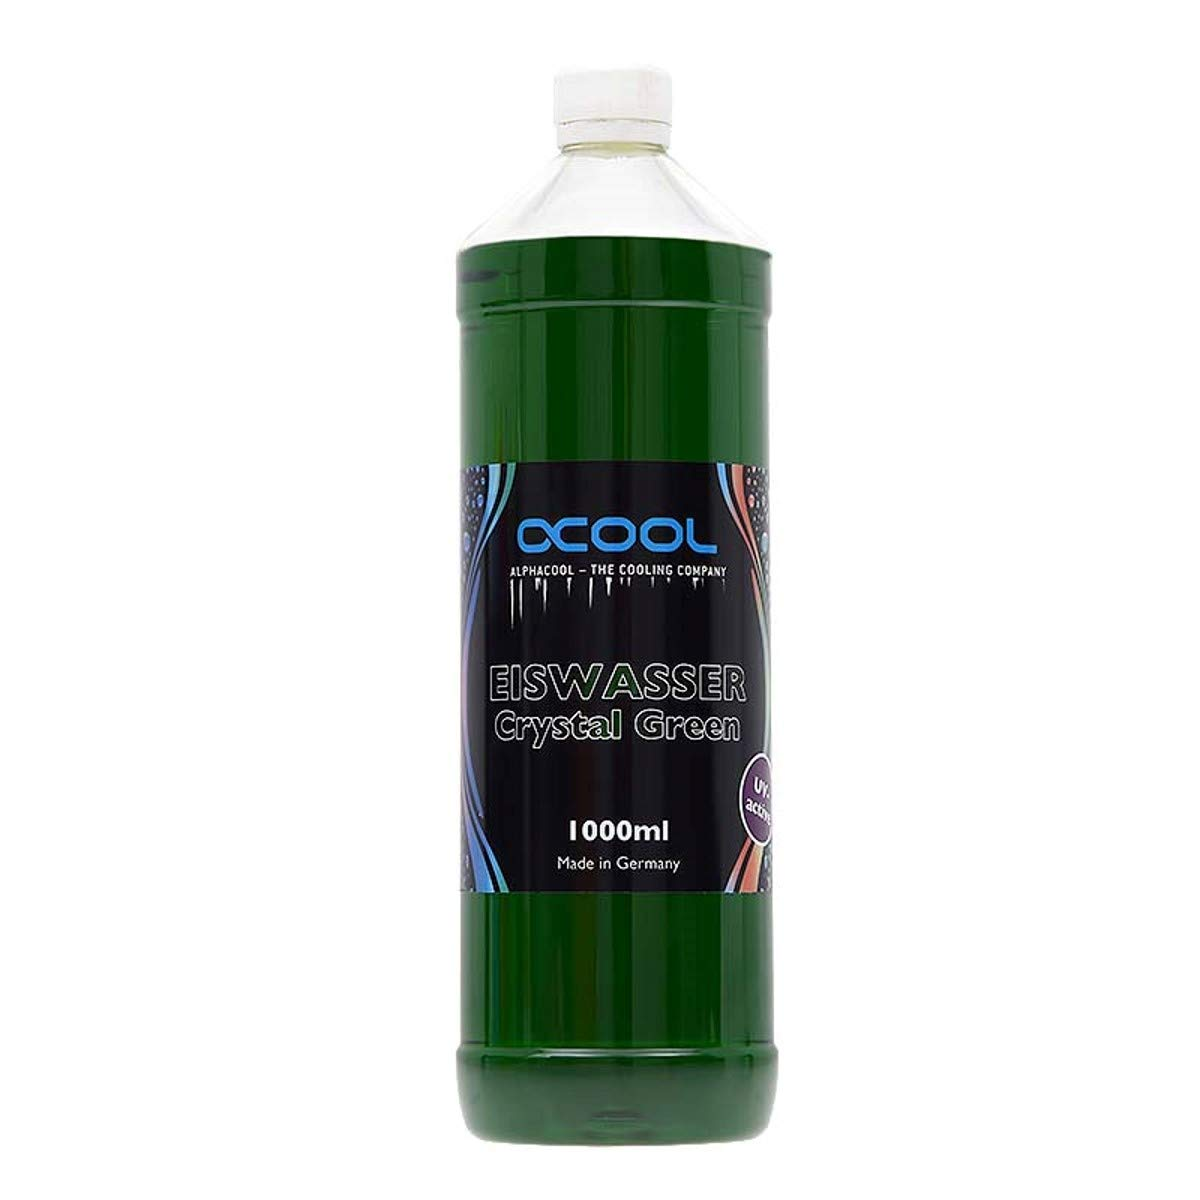 Alphacool Eiswasser Crystal Premixed Coolant (for Long-Term Use), 1000ml, Green UV